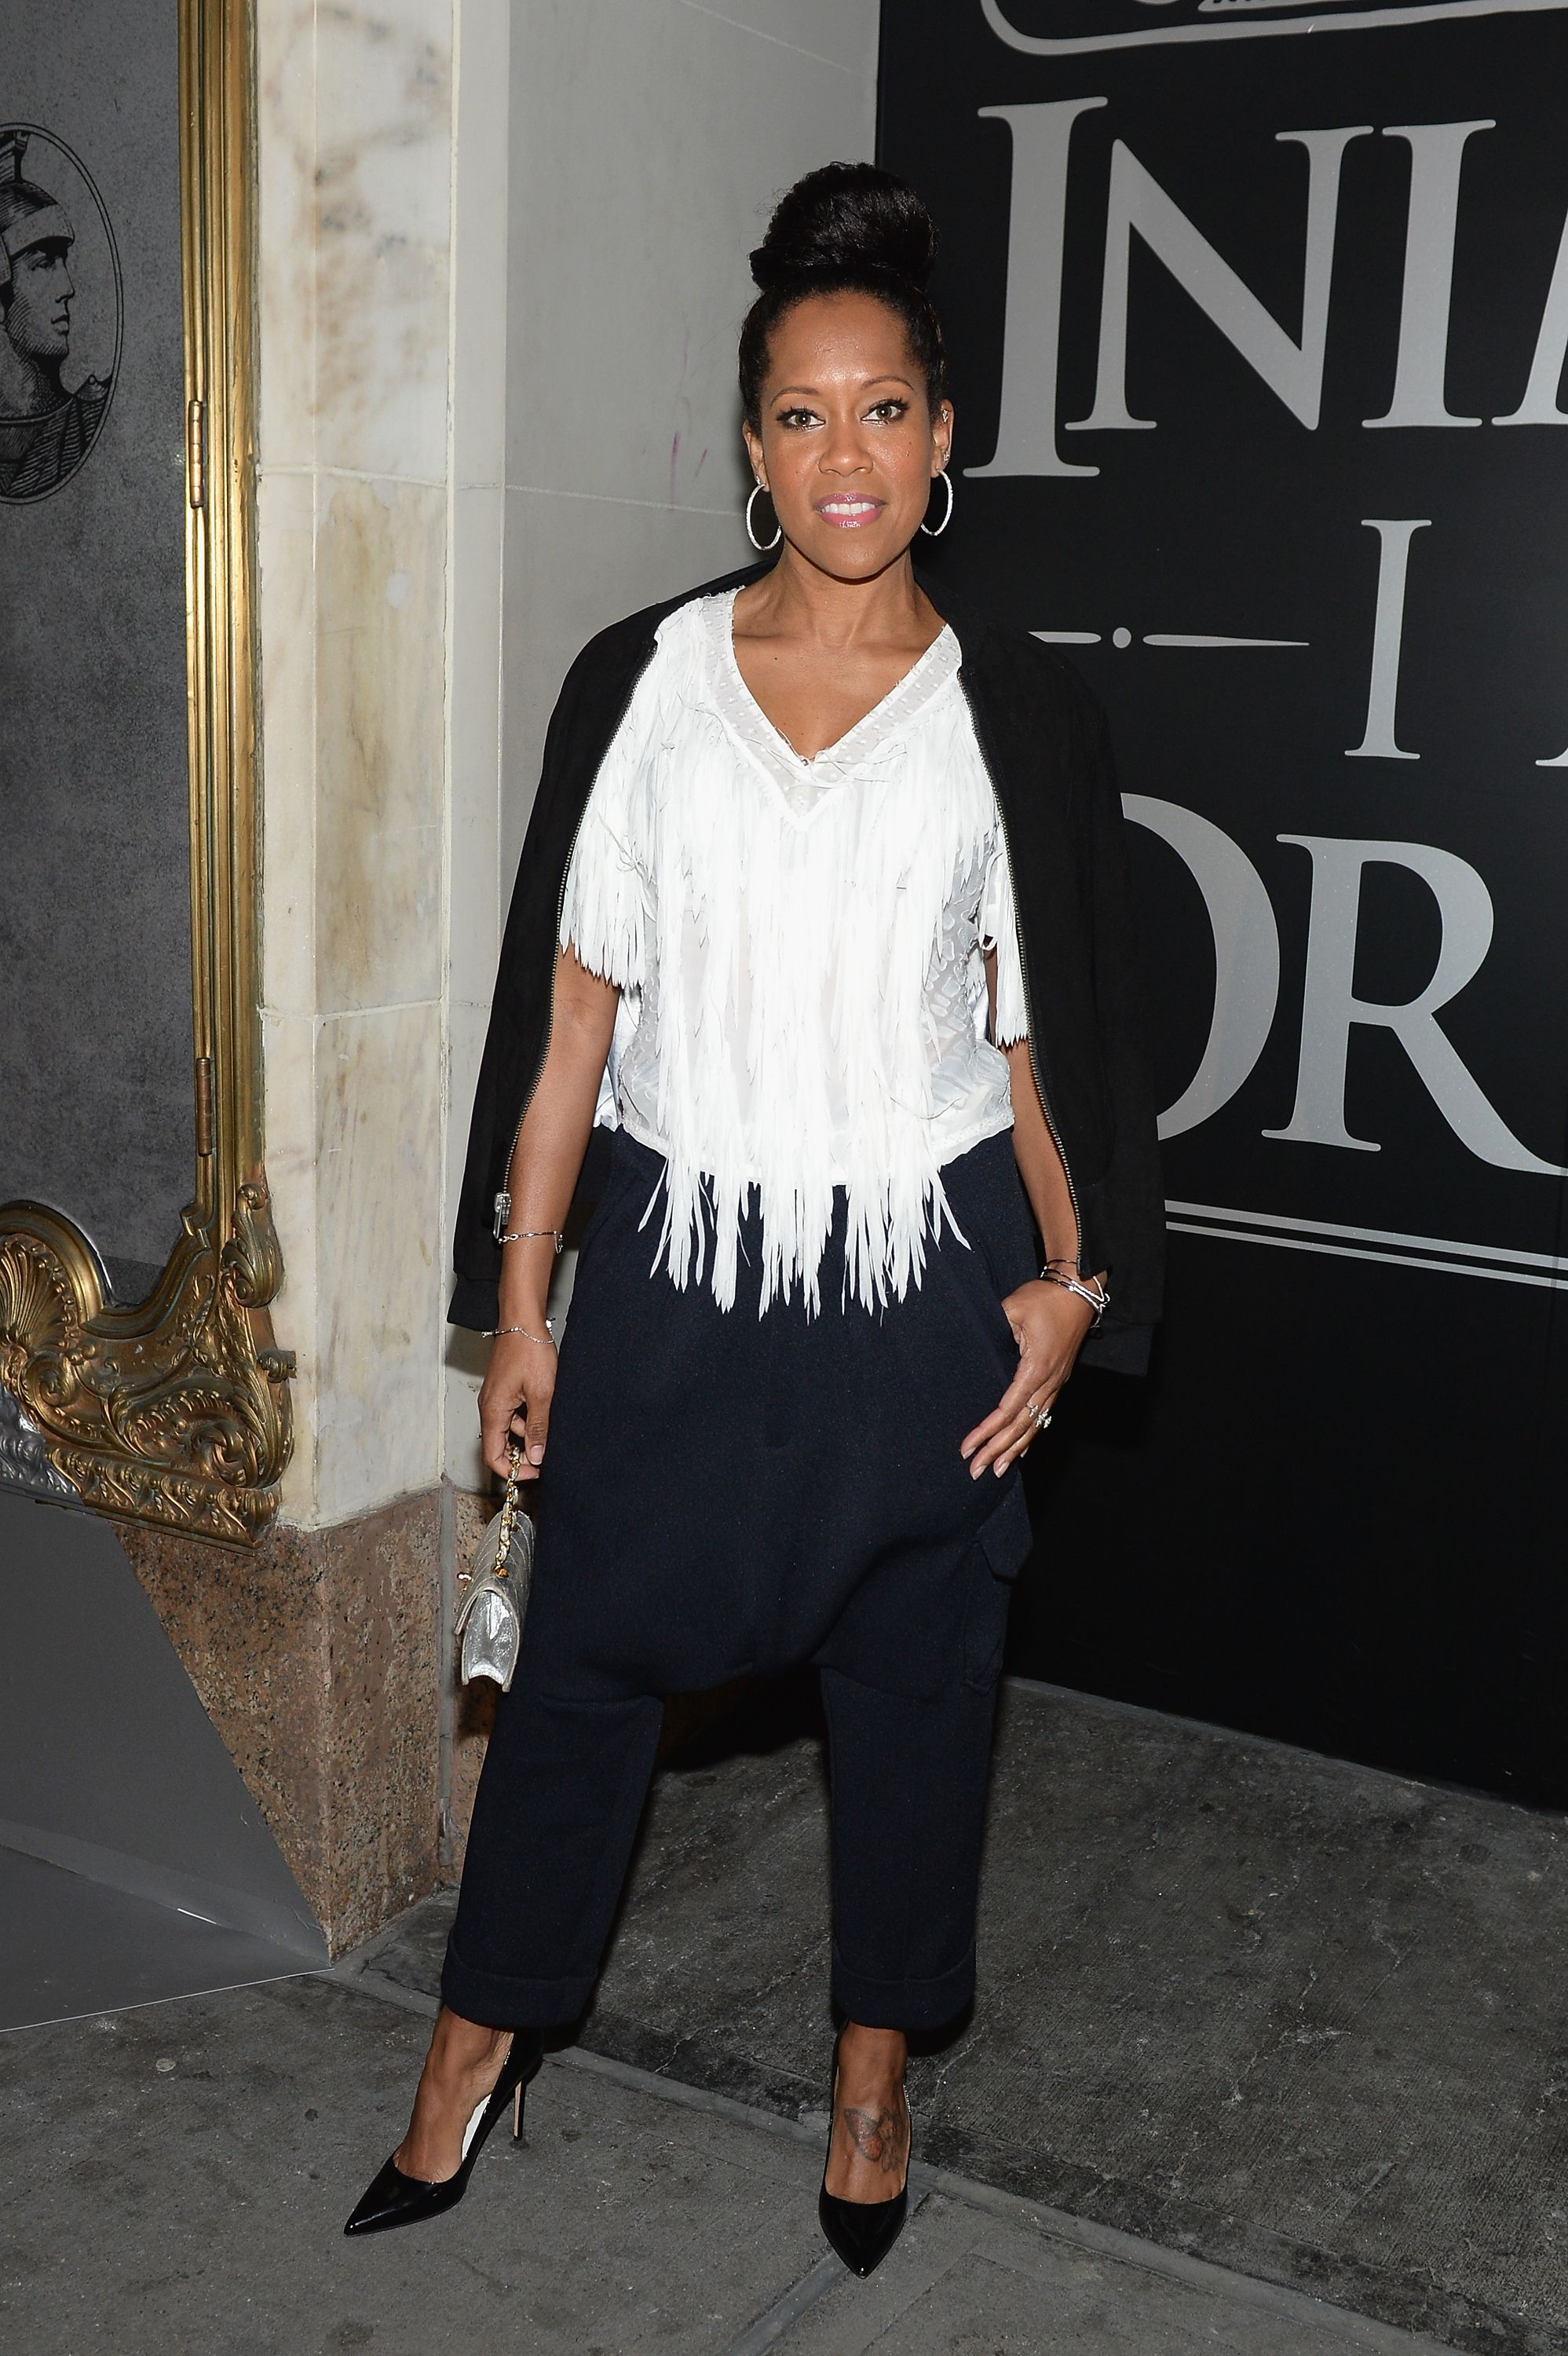 Regina King during the American Express Celebrates The New Platinum Card With Hamilton Takeover Experience on April 1, 2017 in New York City.   Source: Getty Images